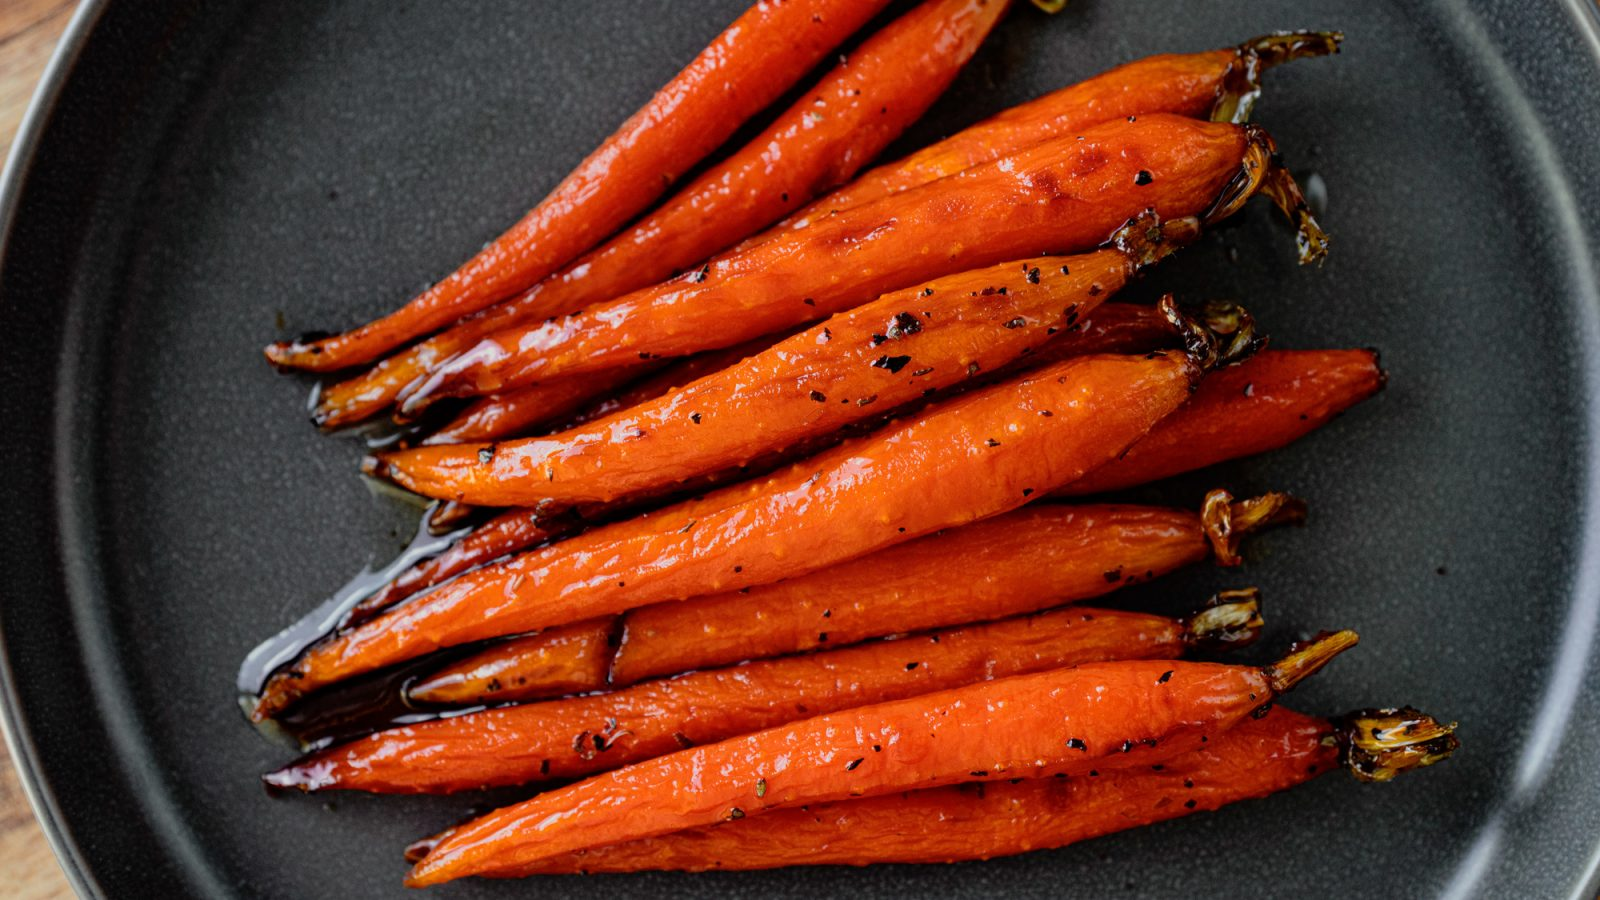 vegan maple glazed carrots on plate